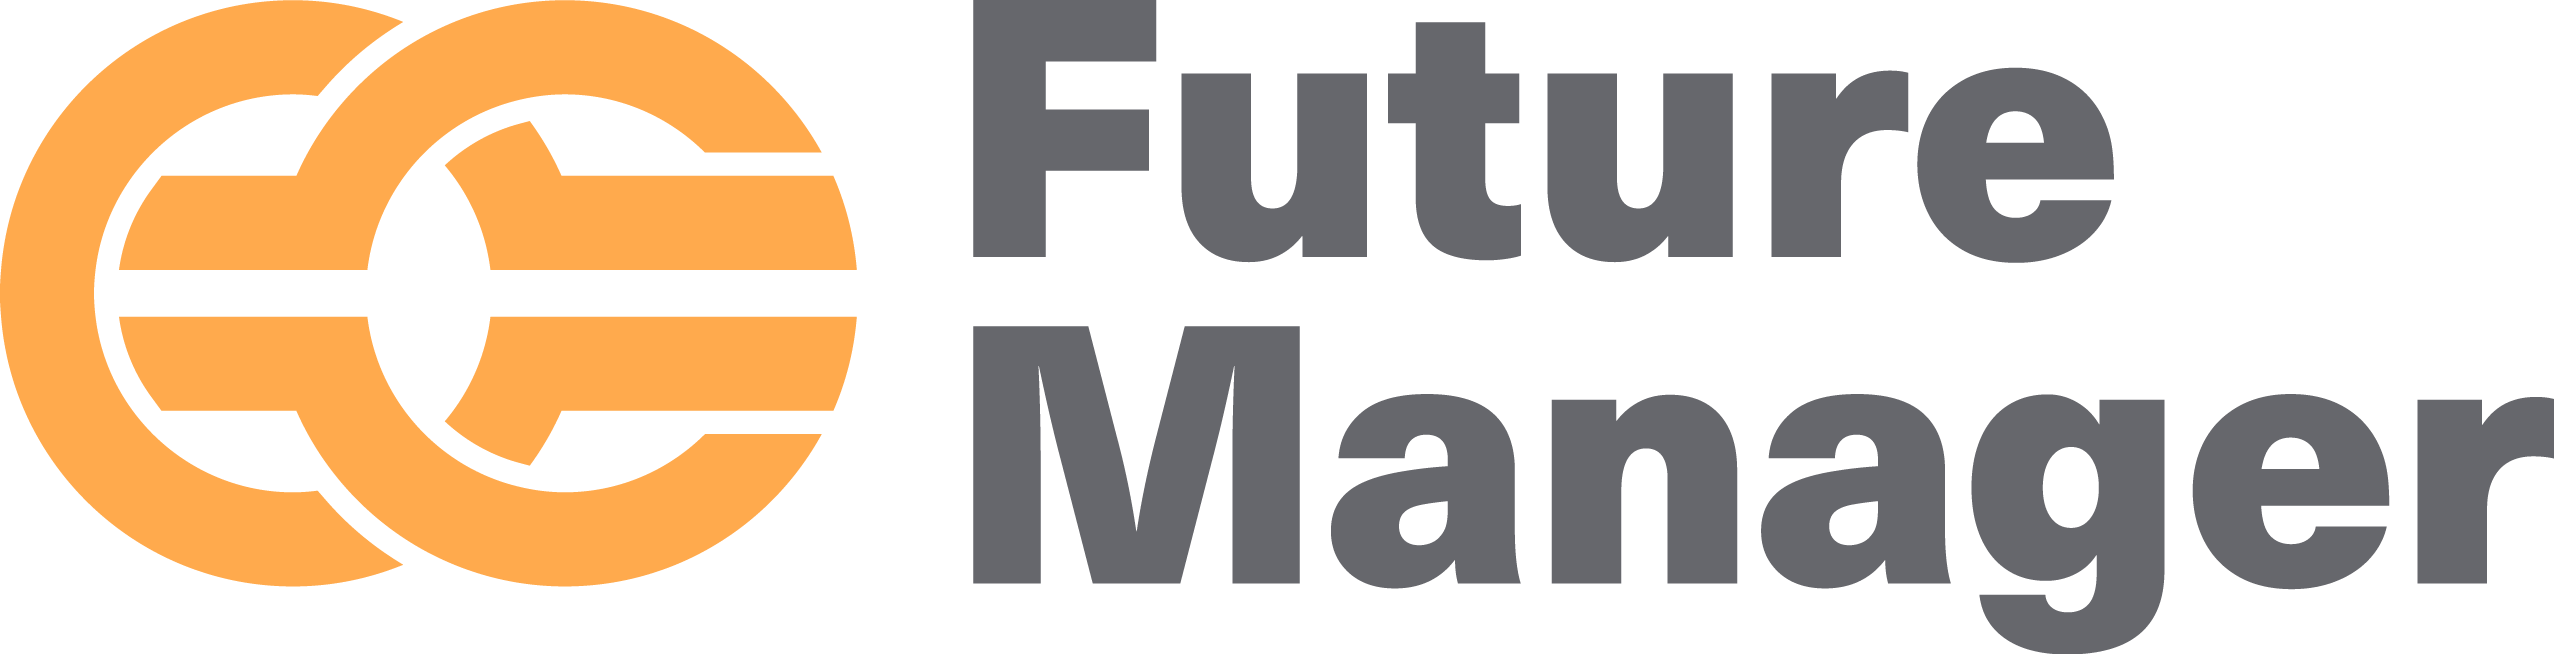 logo de future manager